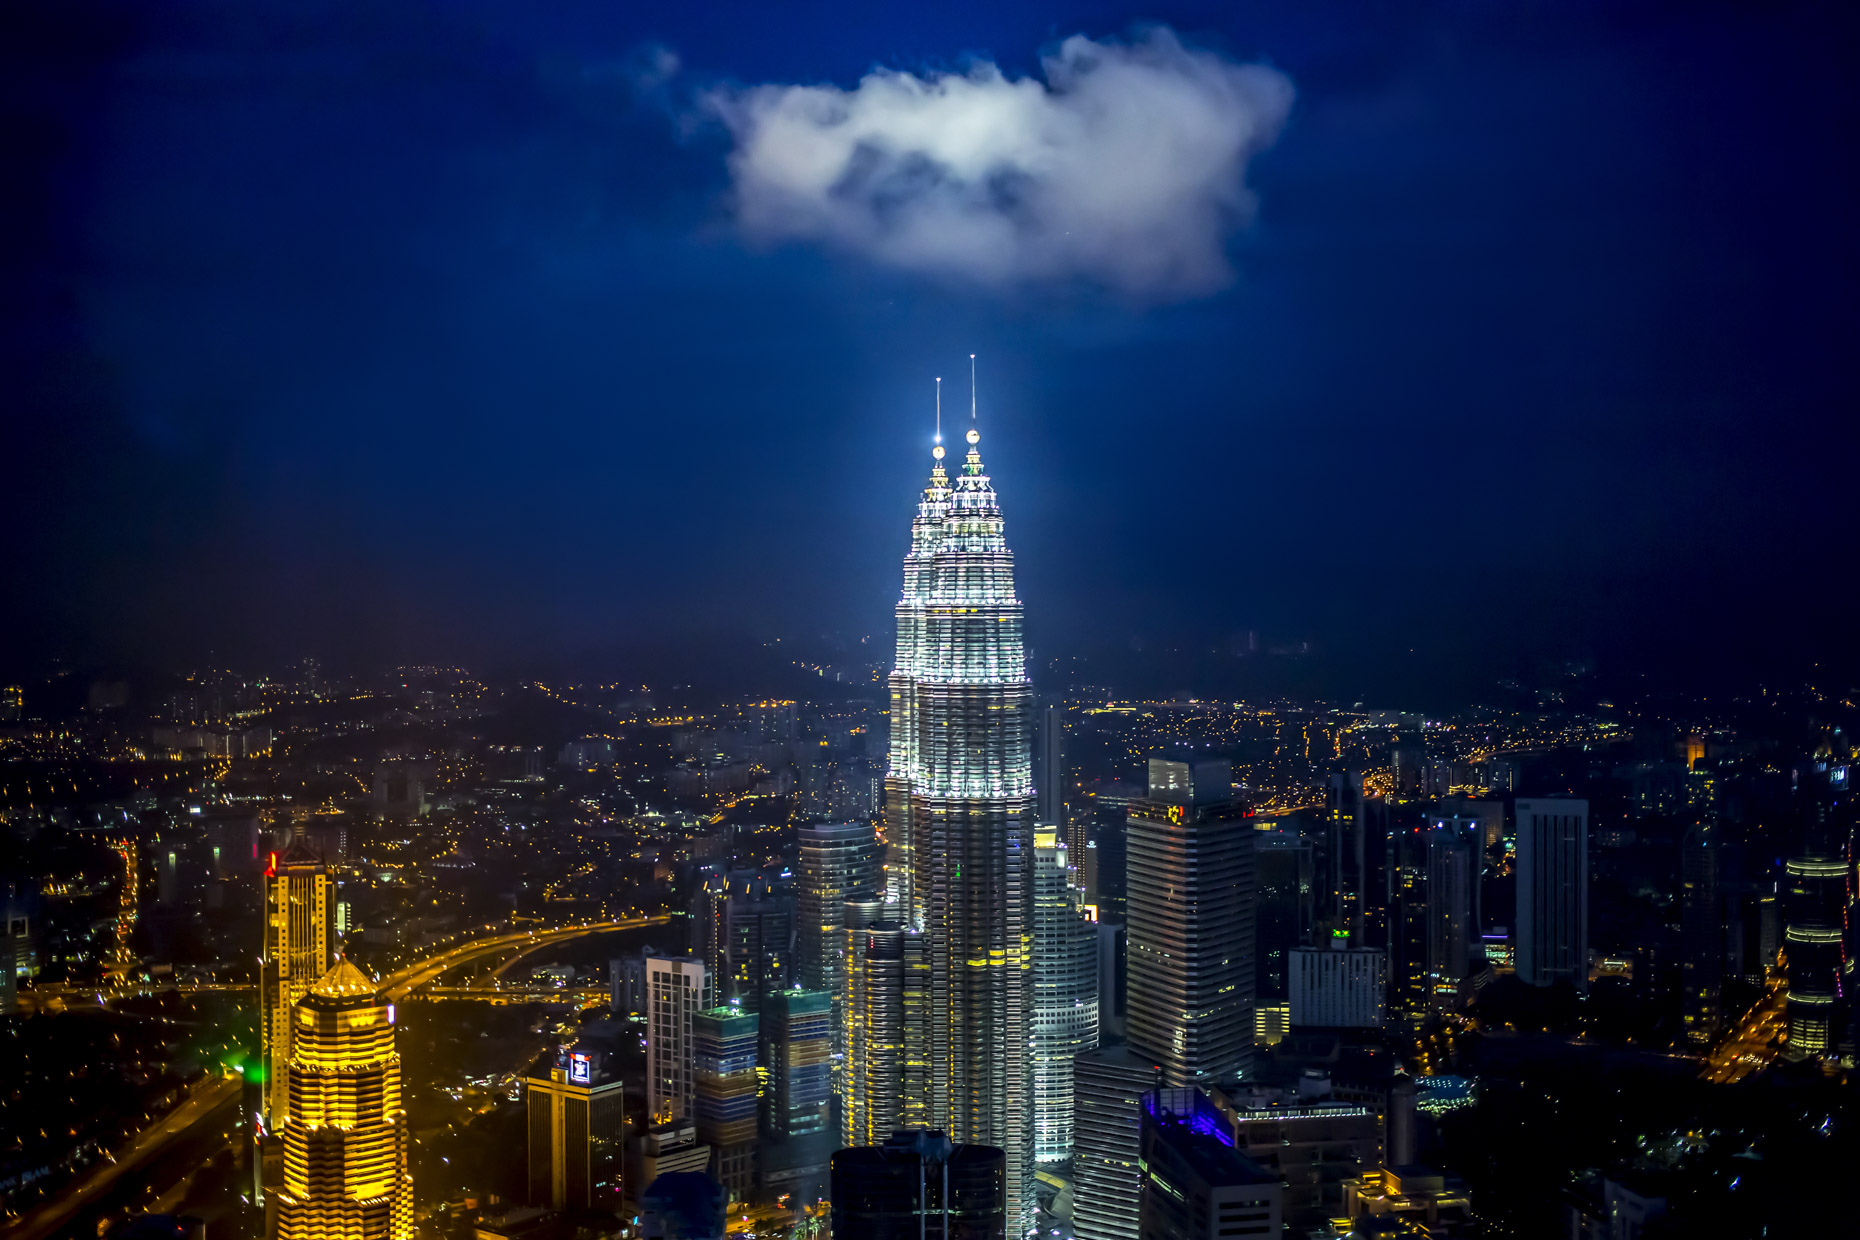 Cloud over Petronas Towers at night in Kuala Lumpur